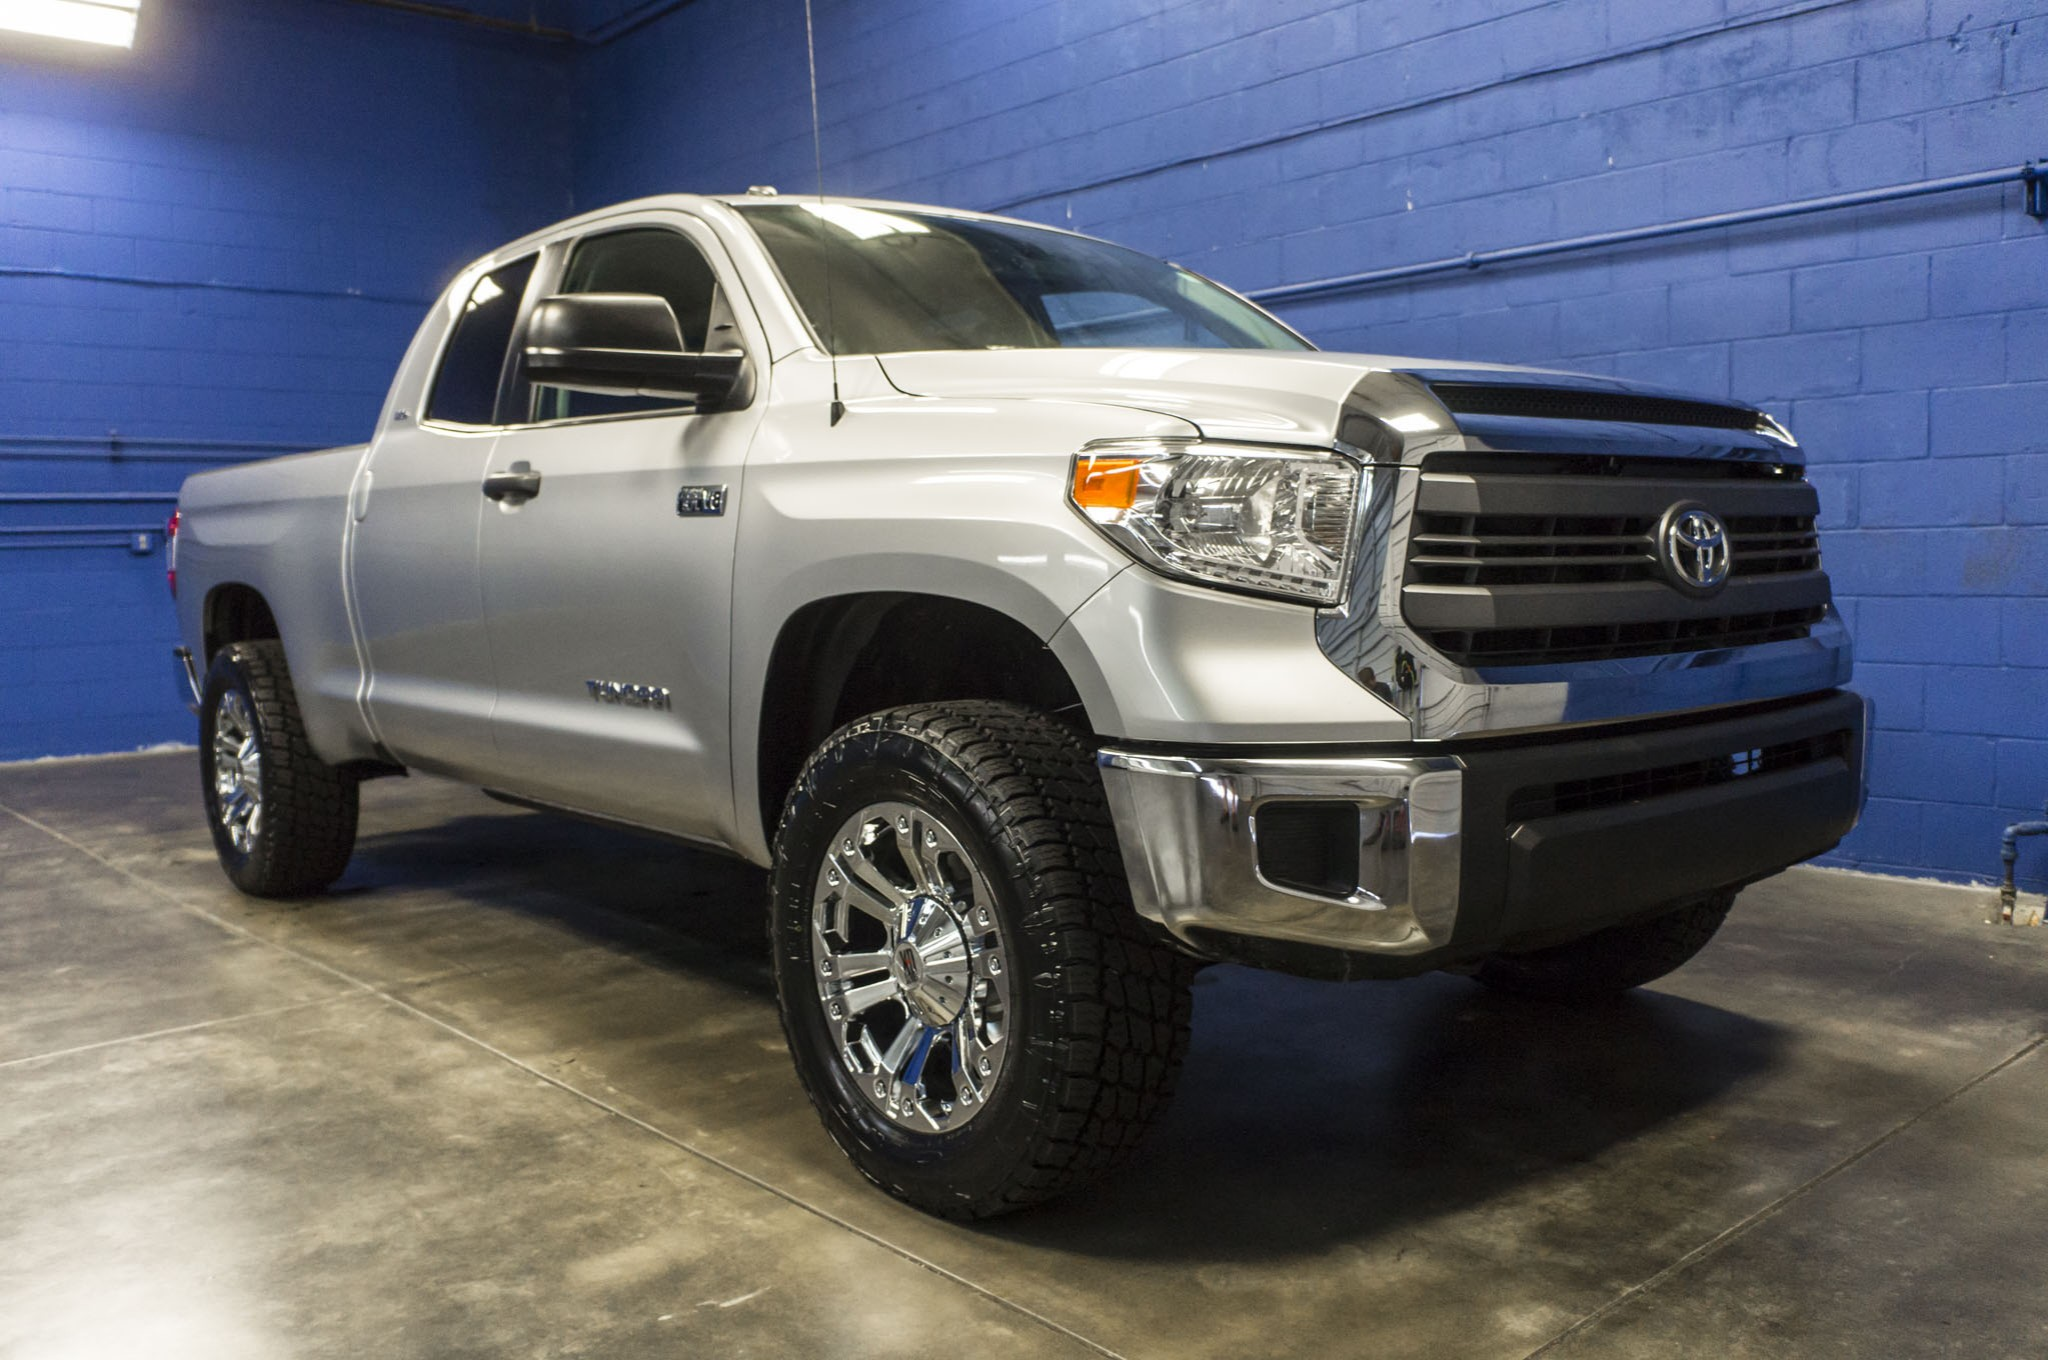 used lifted 2014 toyota tundra srs 4x4 truck for sale 33574. Black Bedroom Furniture Sets. Home Design Ideas